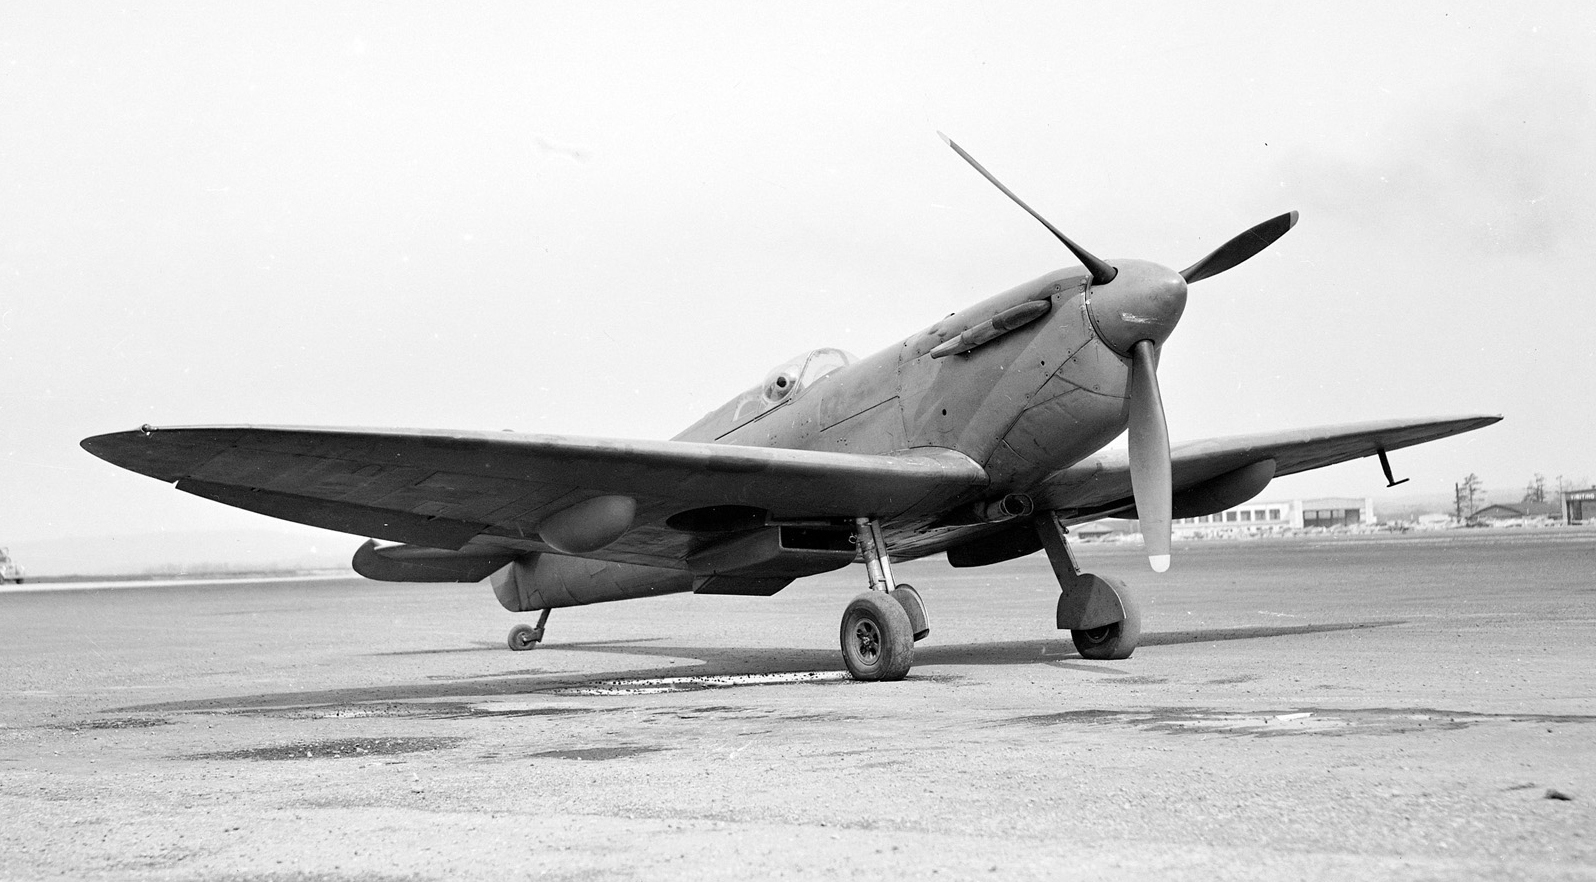 Un Spitfire au sol le 22 mai 1943. PHOTO : Archives du MDN, PL-16608